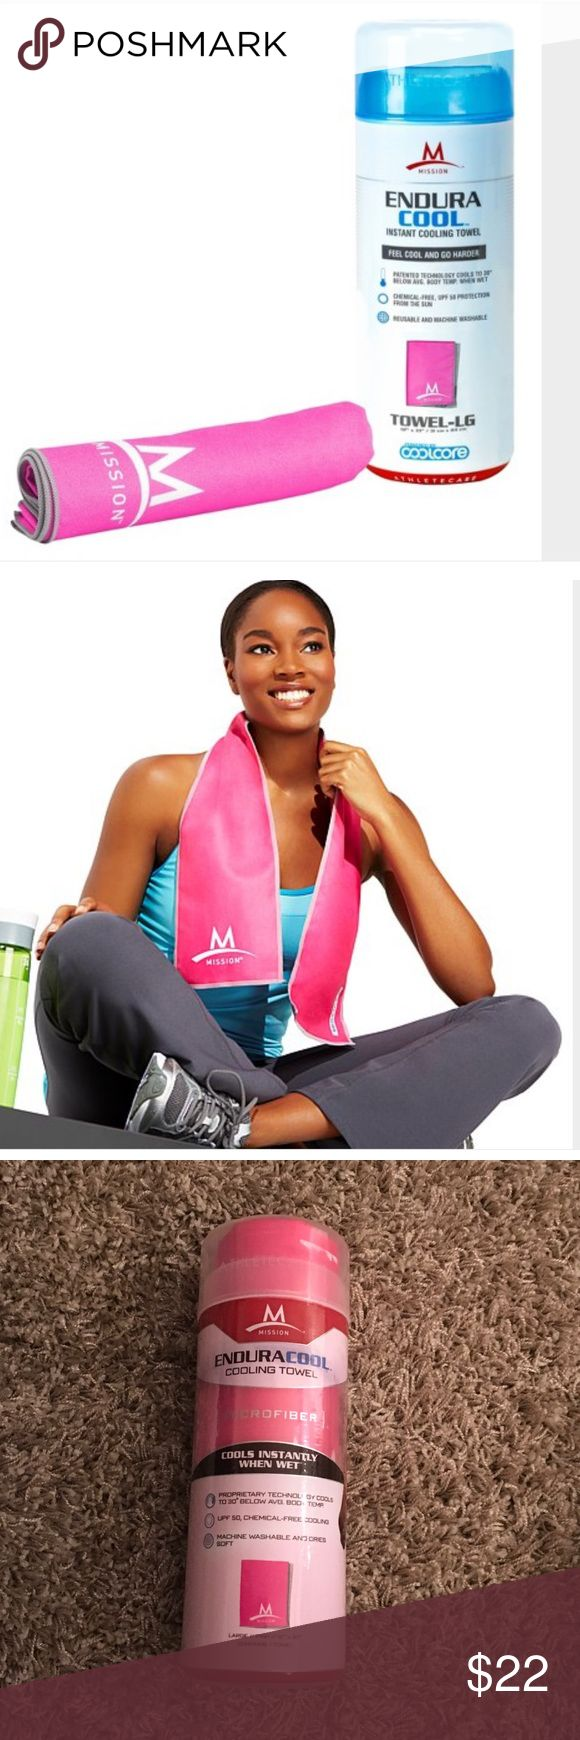 NWT pink enduracool cooling towel EnduraCool Instant Cooling Towel is made from a patented performance fabric that instantly cools when soaked with water, wrung out, and then snapped in the air to activate the cooling properties. The high-performance, multi-yarn fiber absorbs moisture and perspiration into the fabric core where the unique radiator-like fiber construction circulates water molecules and regulates the rate of evaporation to create a prolonged cooling effect UPF 50 protection…